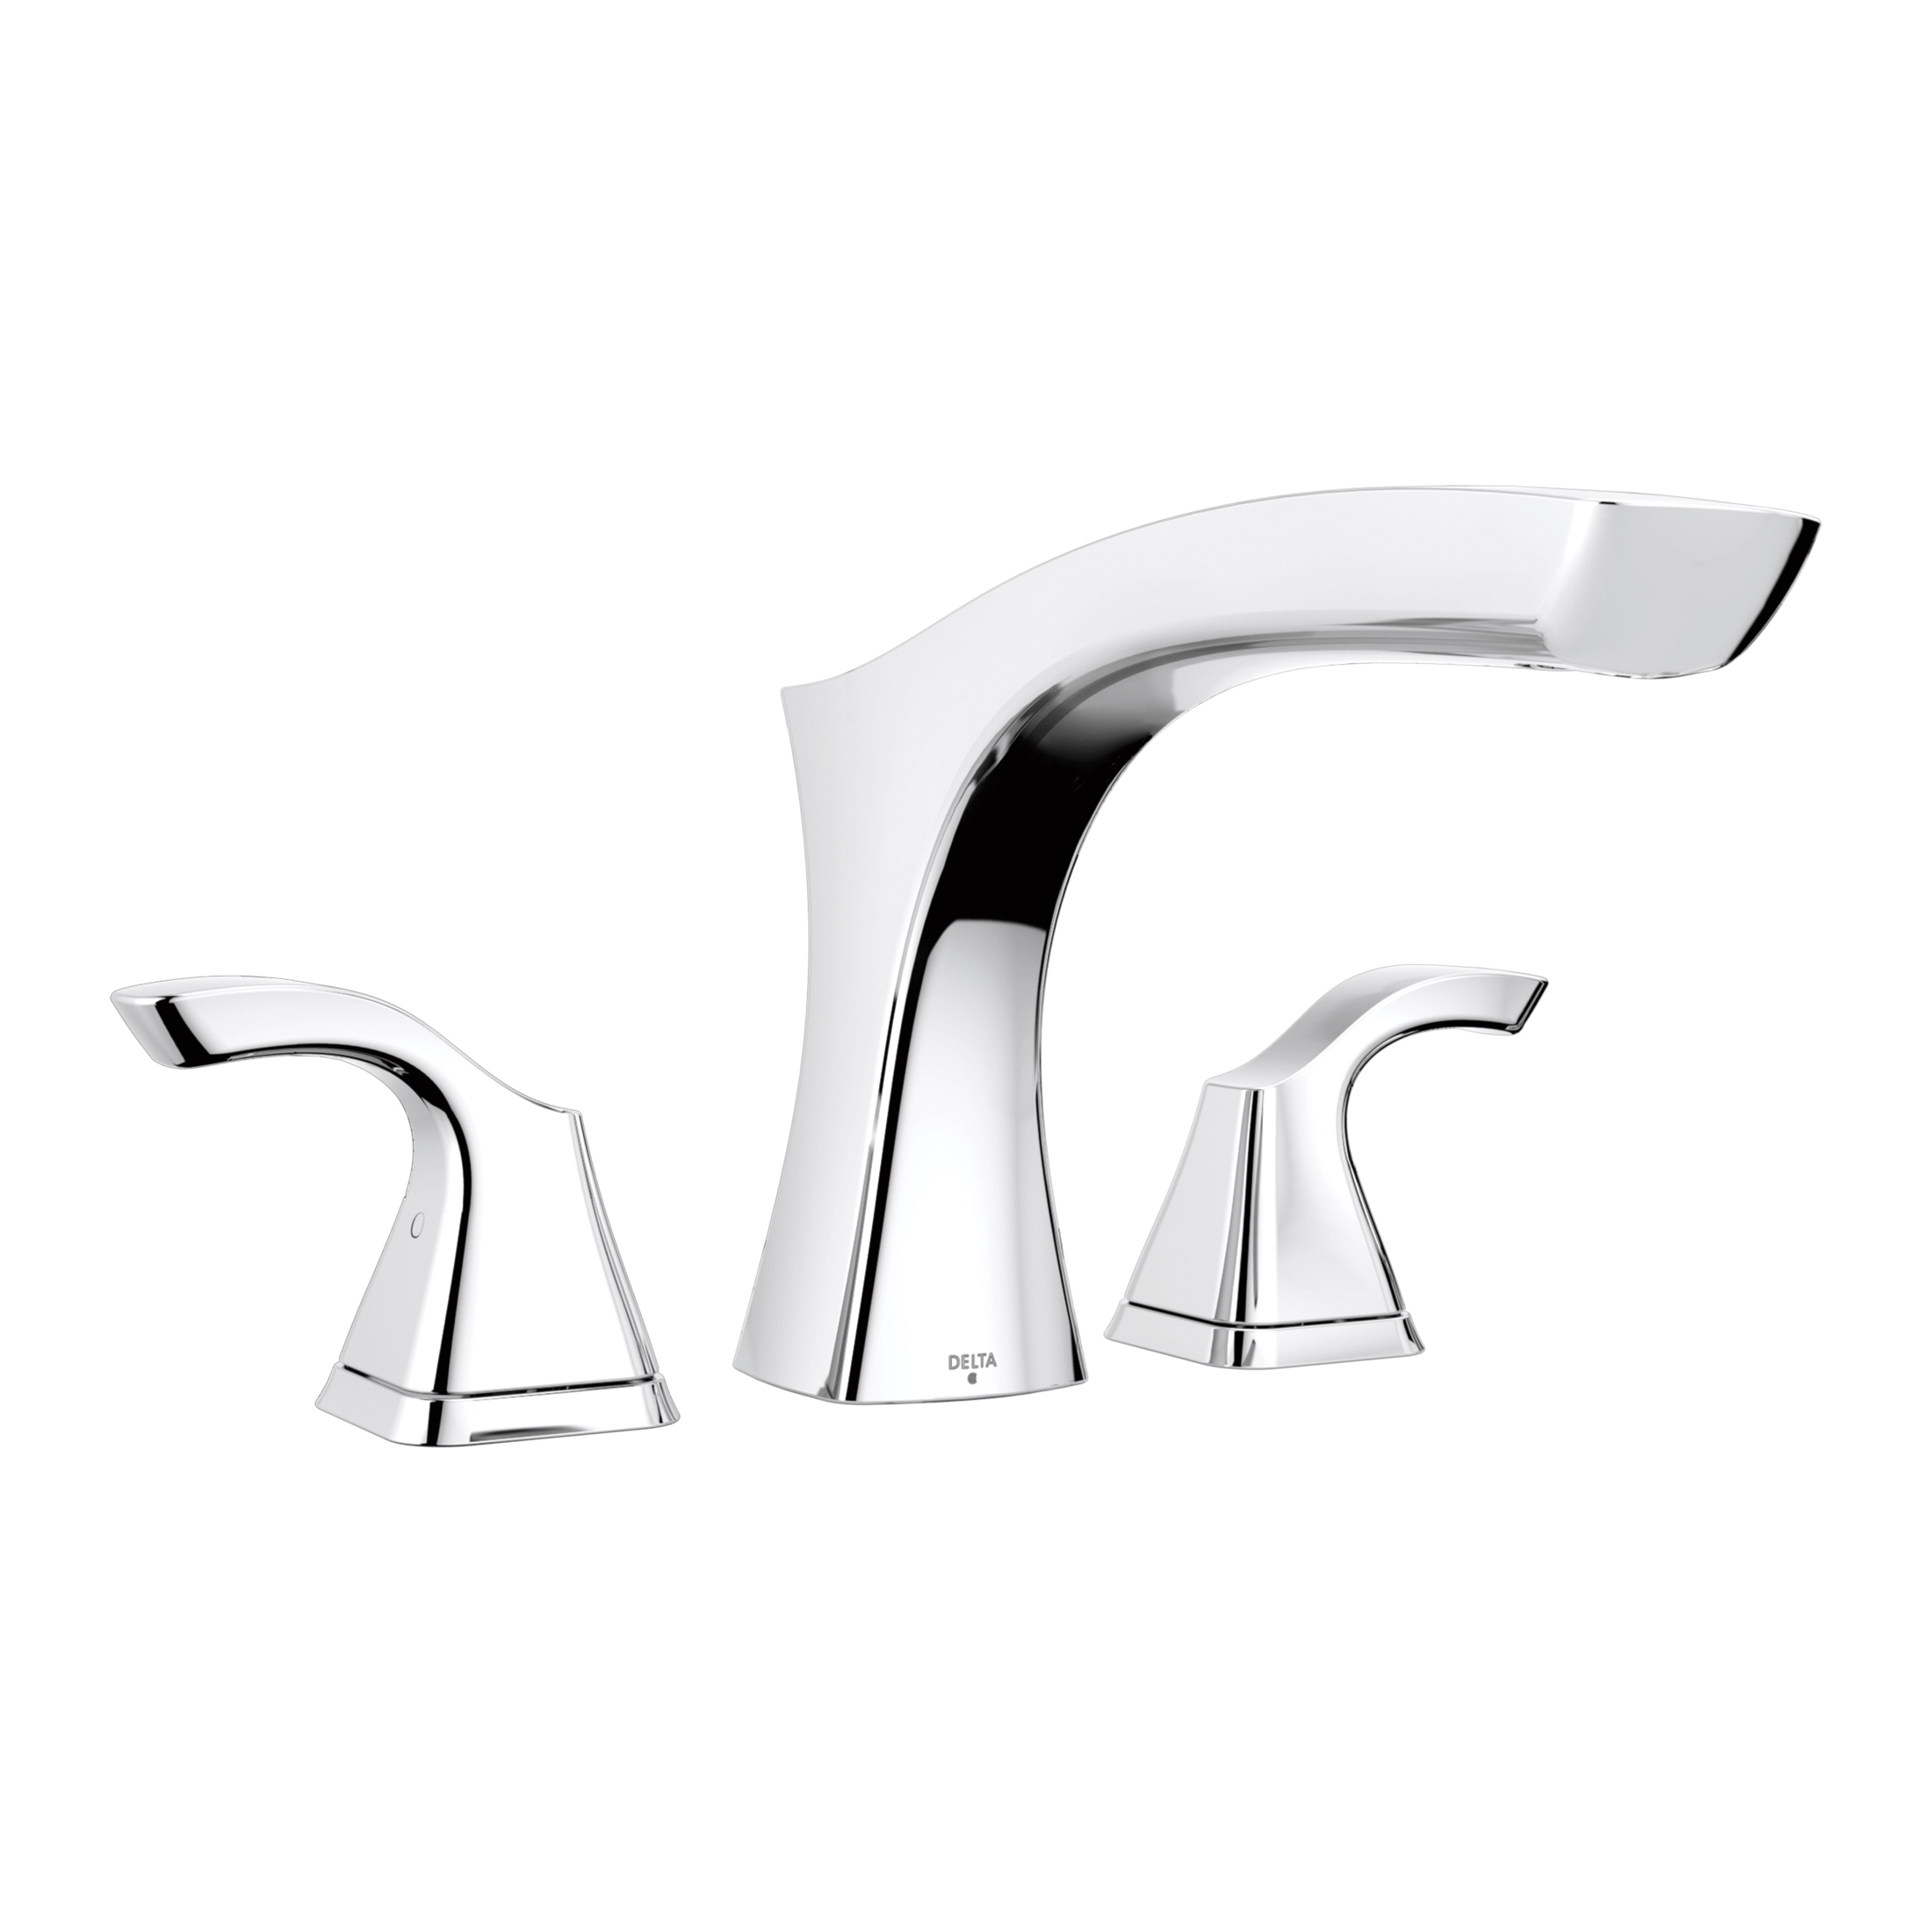 DELTA® T2752 Tesla® Roman Tub Trim, 2 gpm, 8 to 16 in Center, Chrome Plated, 2 Handles, Hand Shower Yes/No: No, Domestic, Commercial